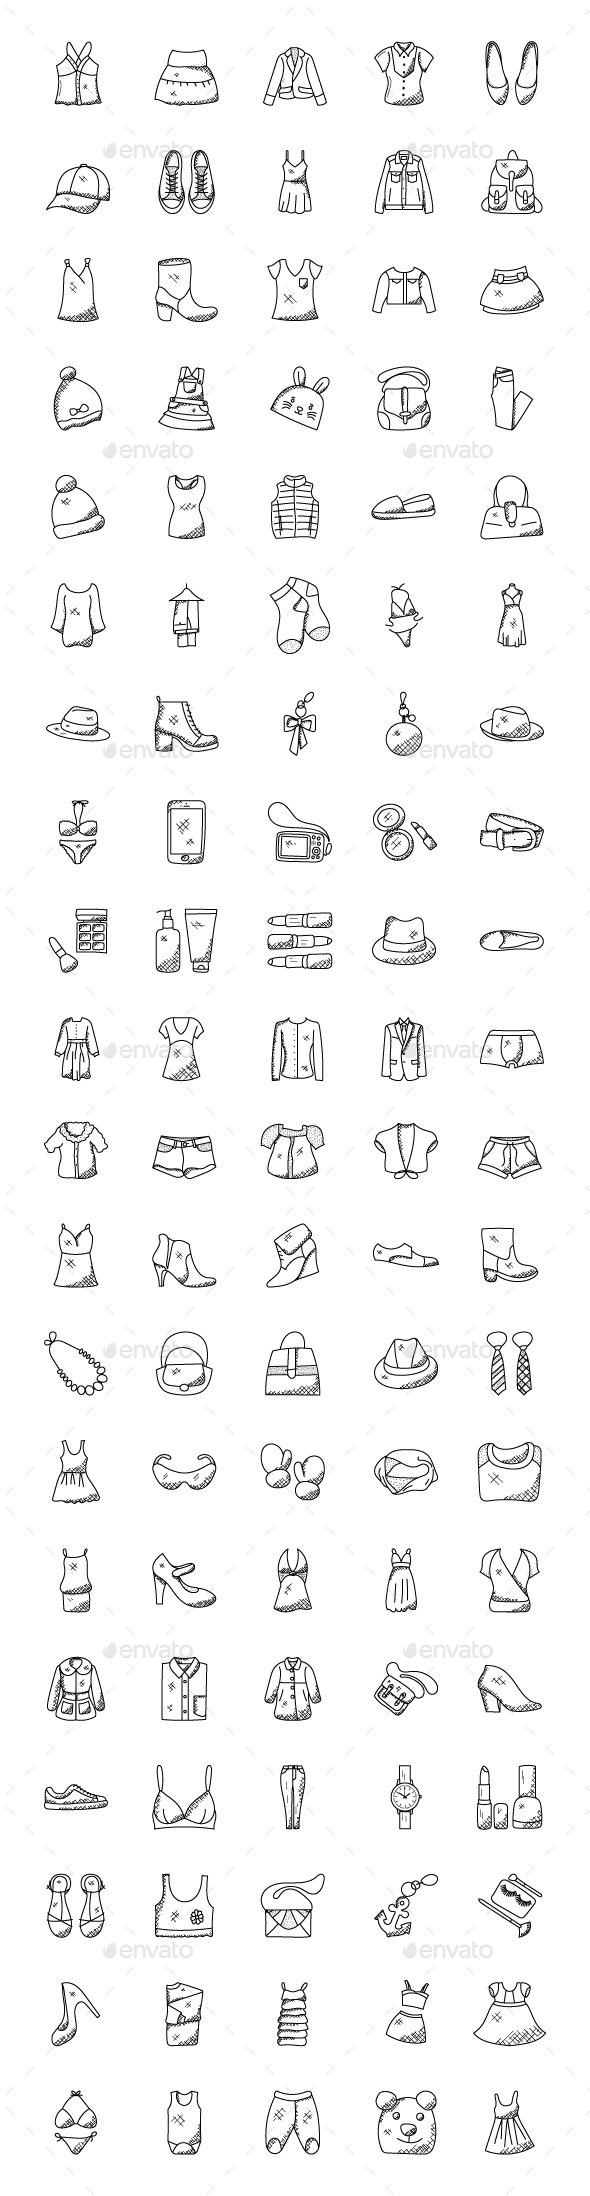 GraphicRiver 100 Hand Drawn Doodle Fashion Icons 21159125